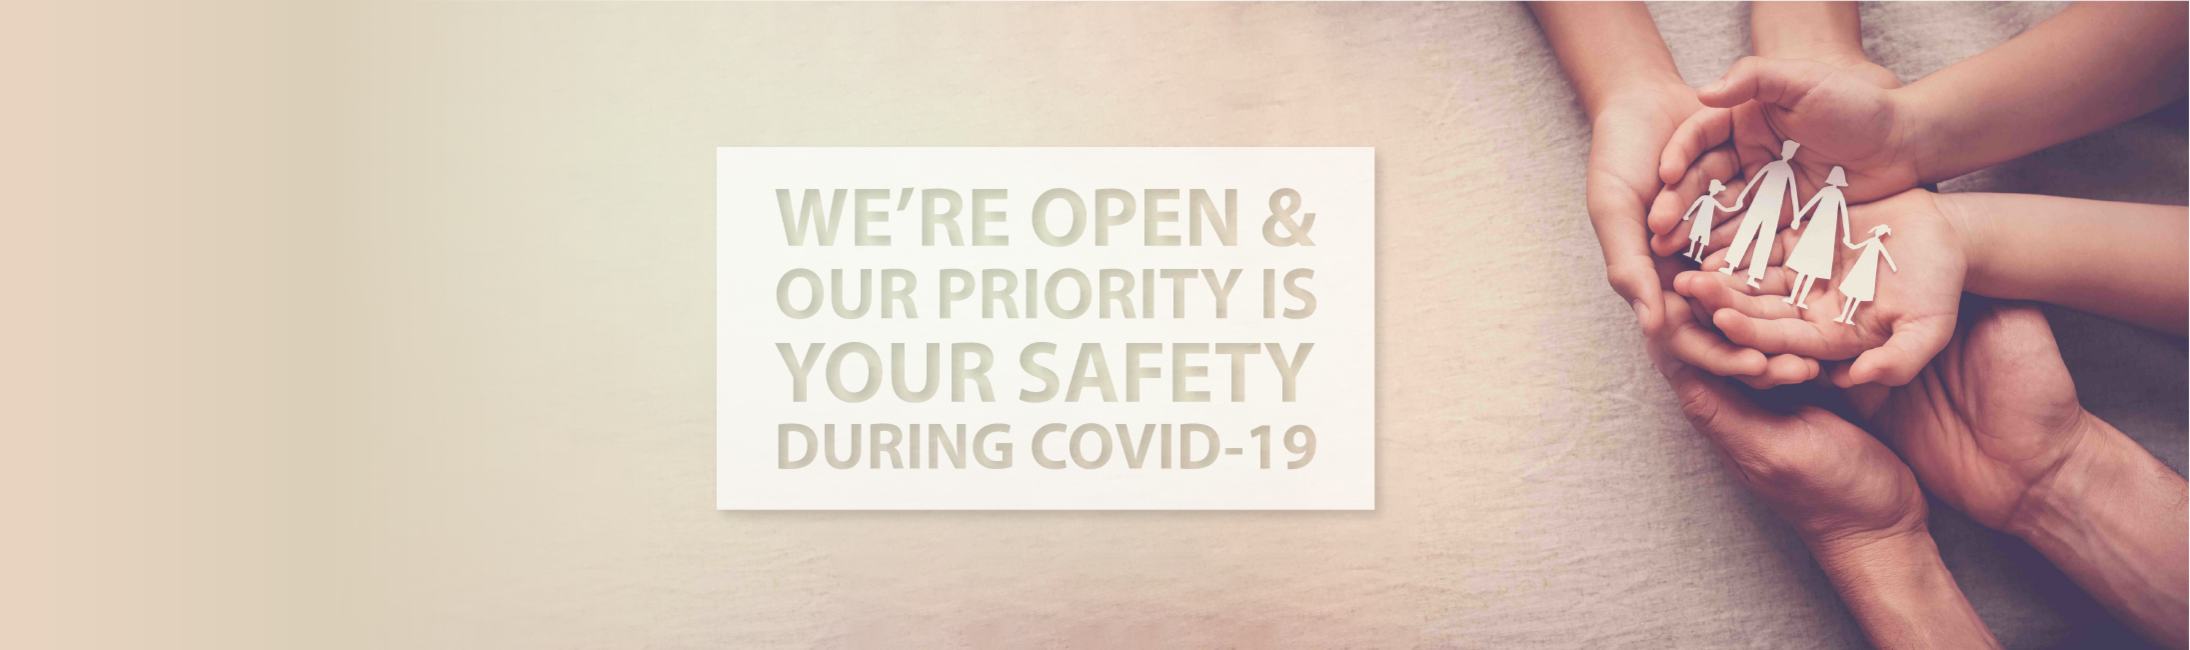 COVID Safety is our priority